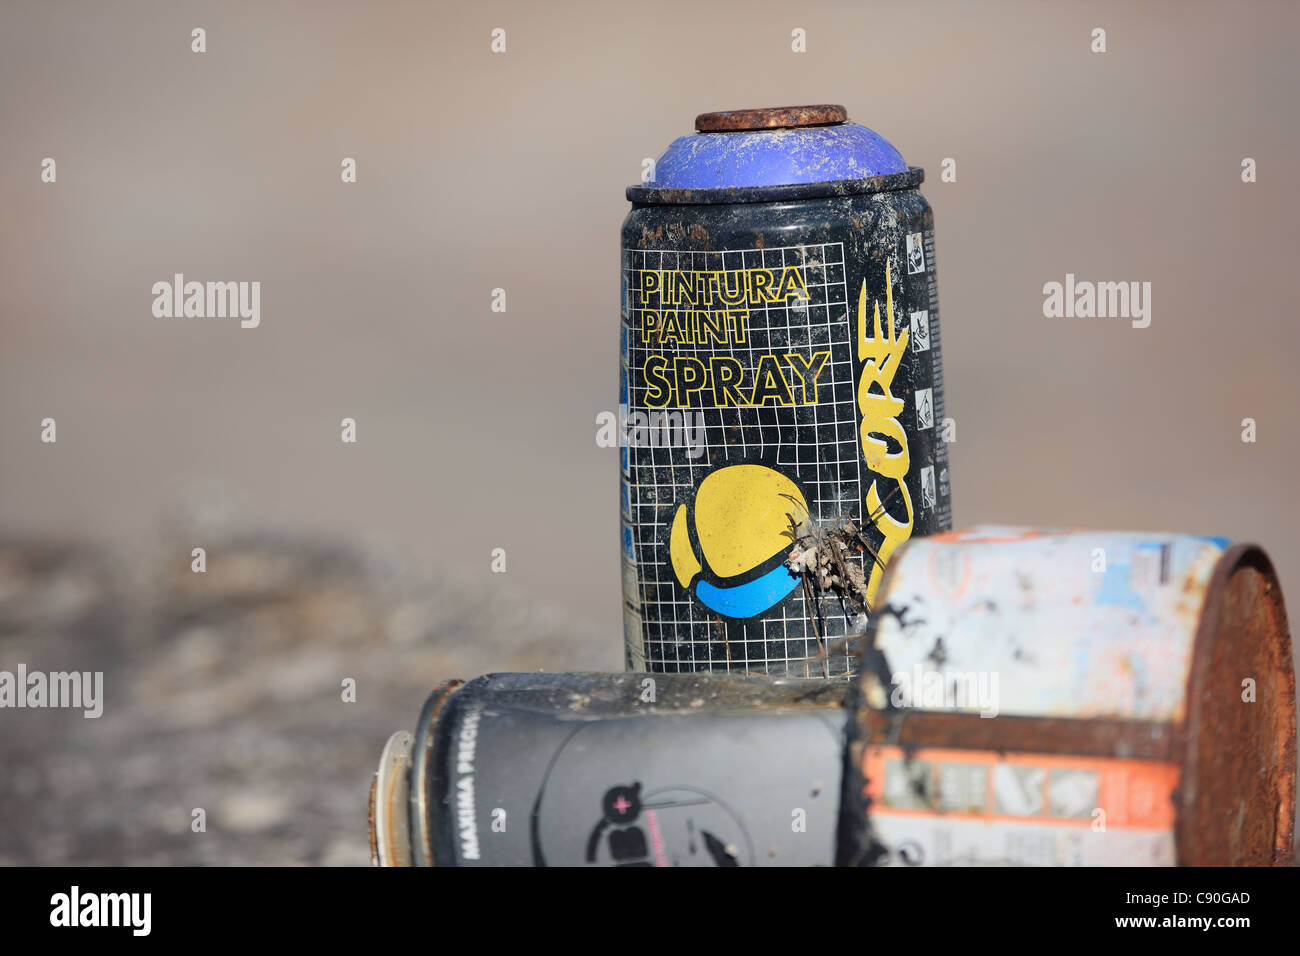 spray paint cans discarded after being used for graffiti - Stock Image